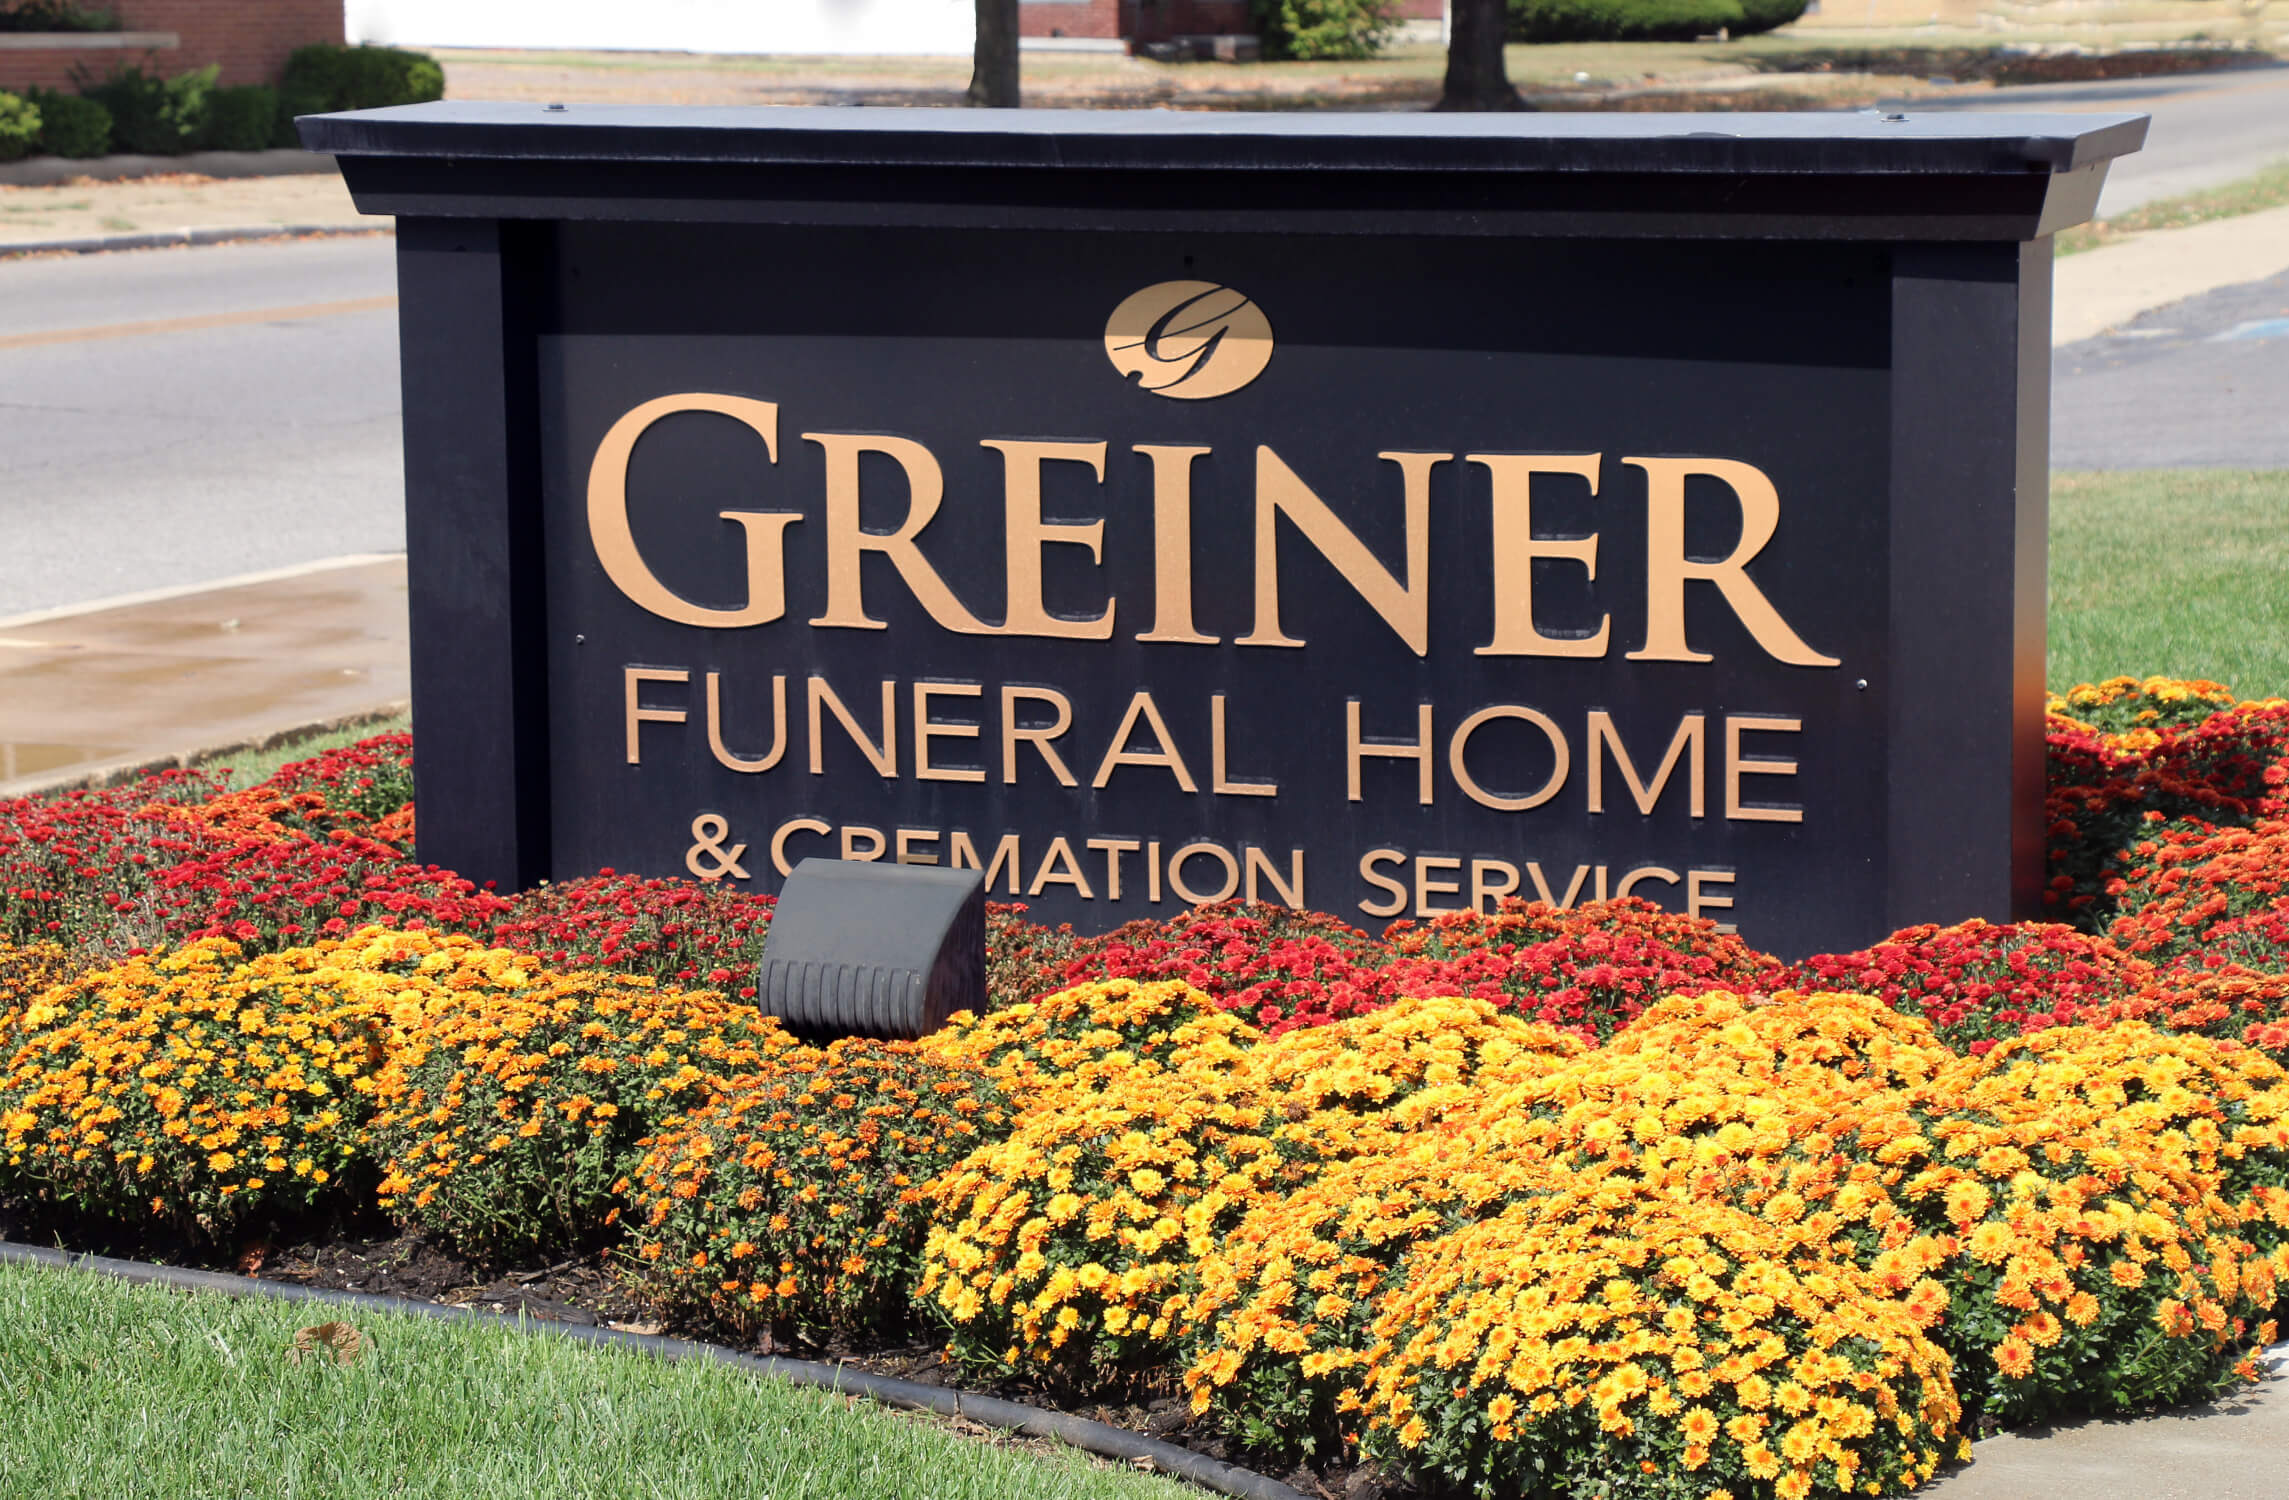 Greiner funeral home and cremation services terre haute in funeral send flowers izmirmasajfo Images